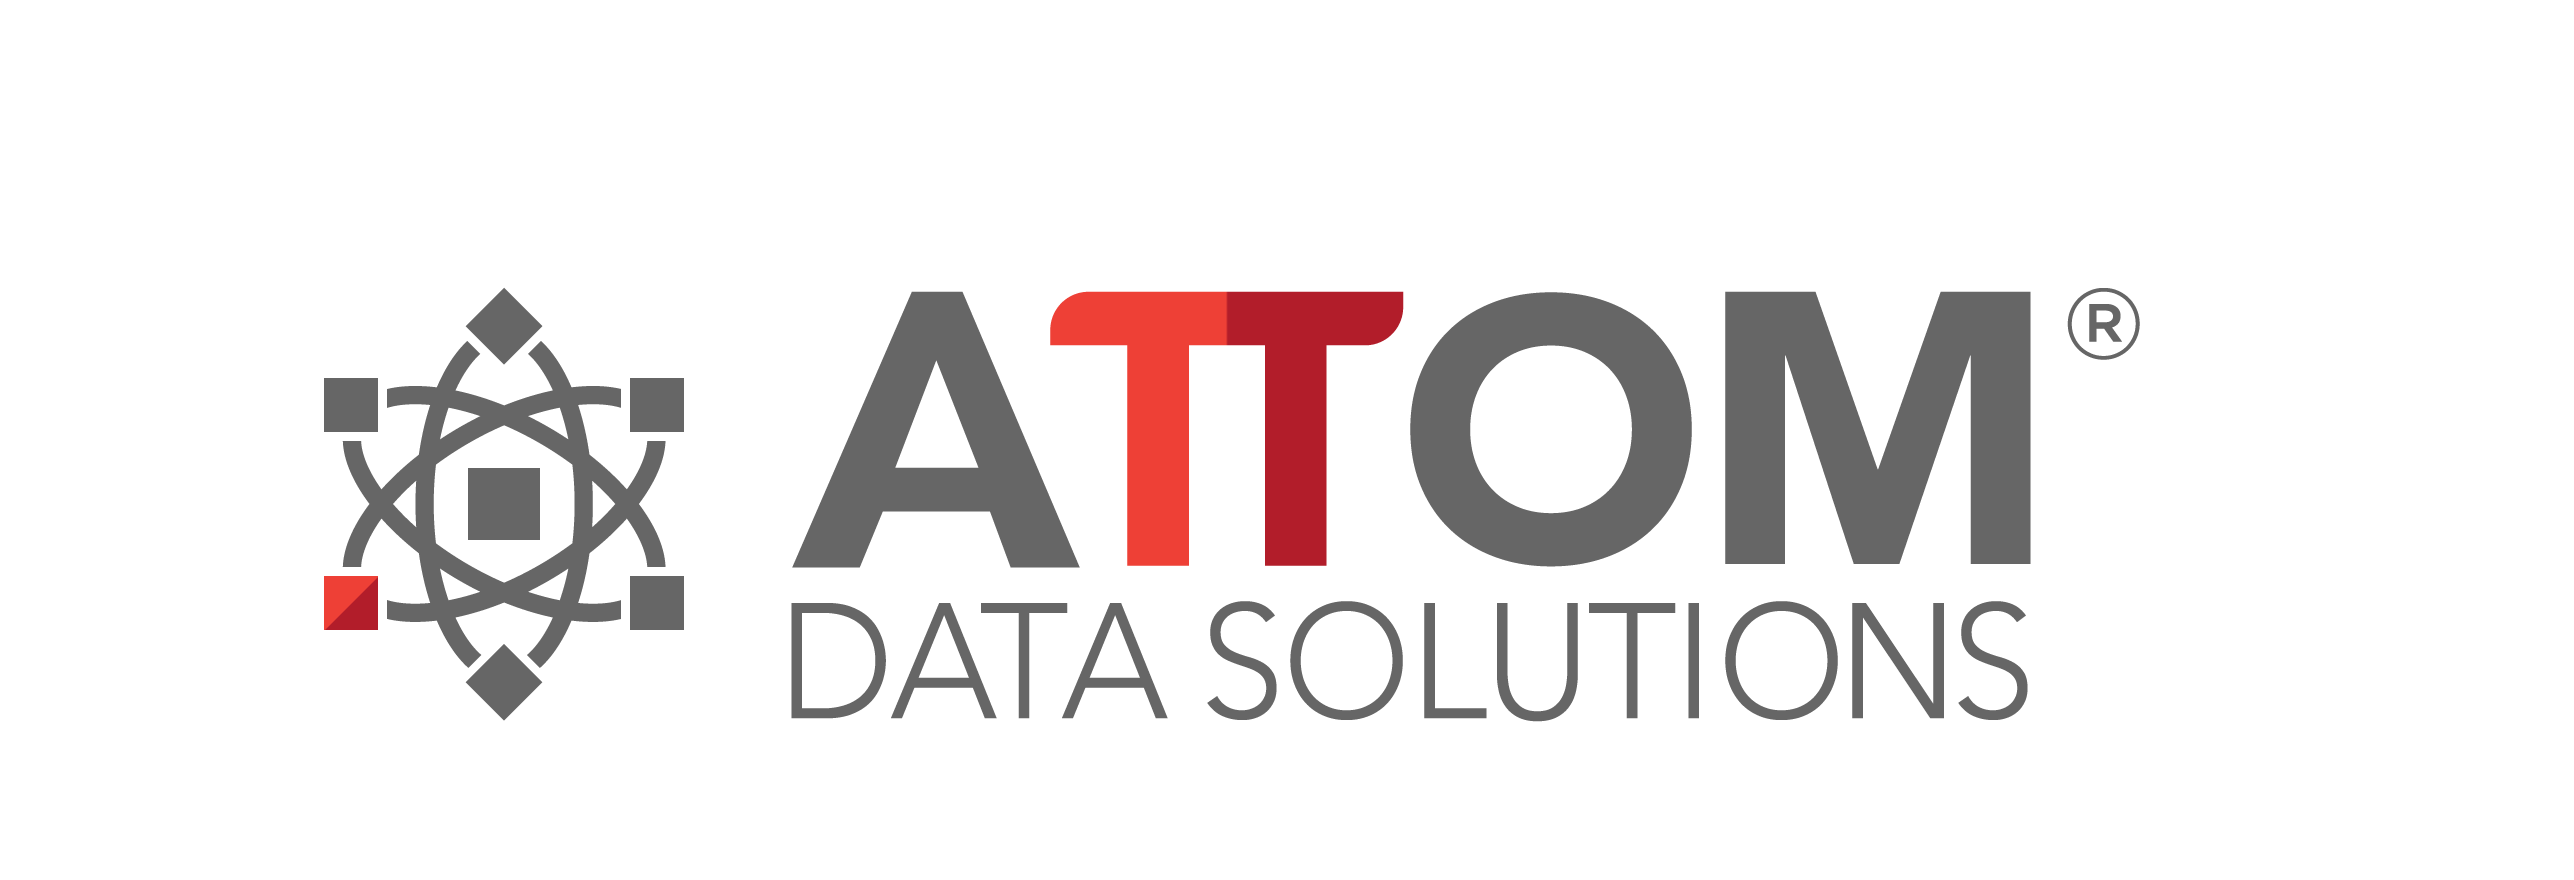 ATTOM Data Solutions Launches New Streamlined API